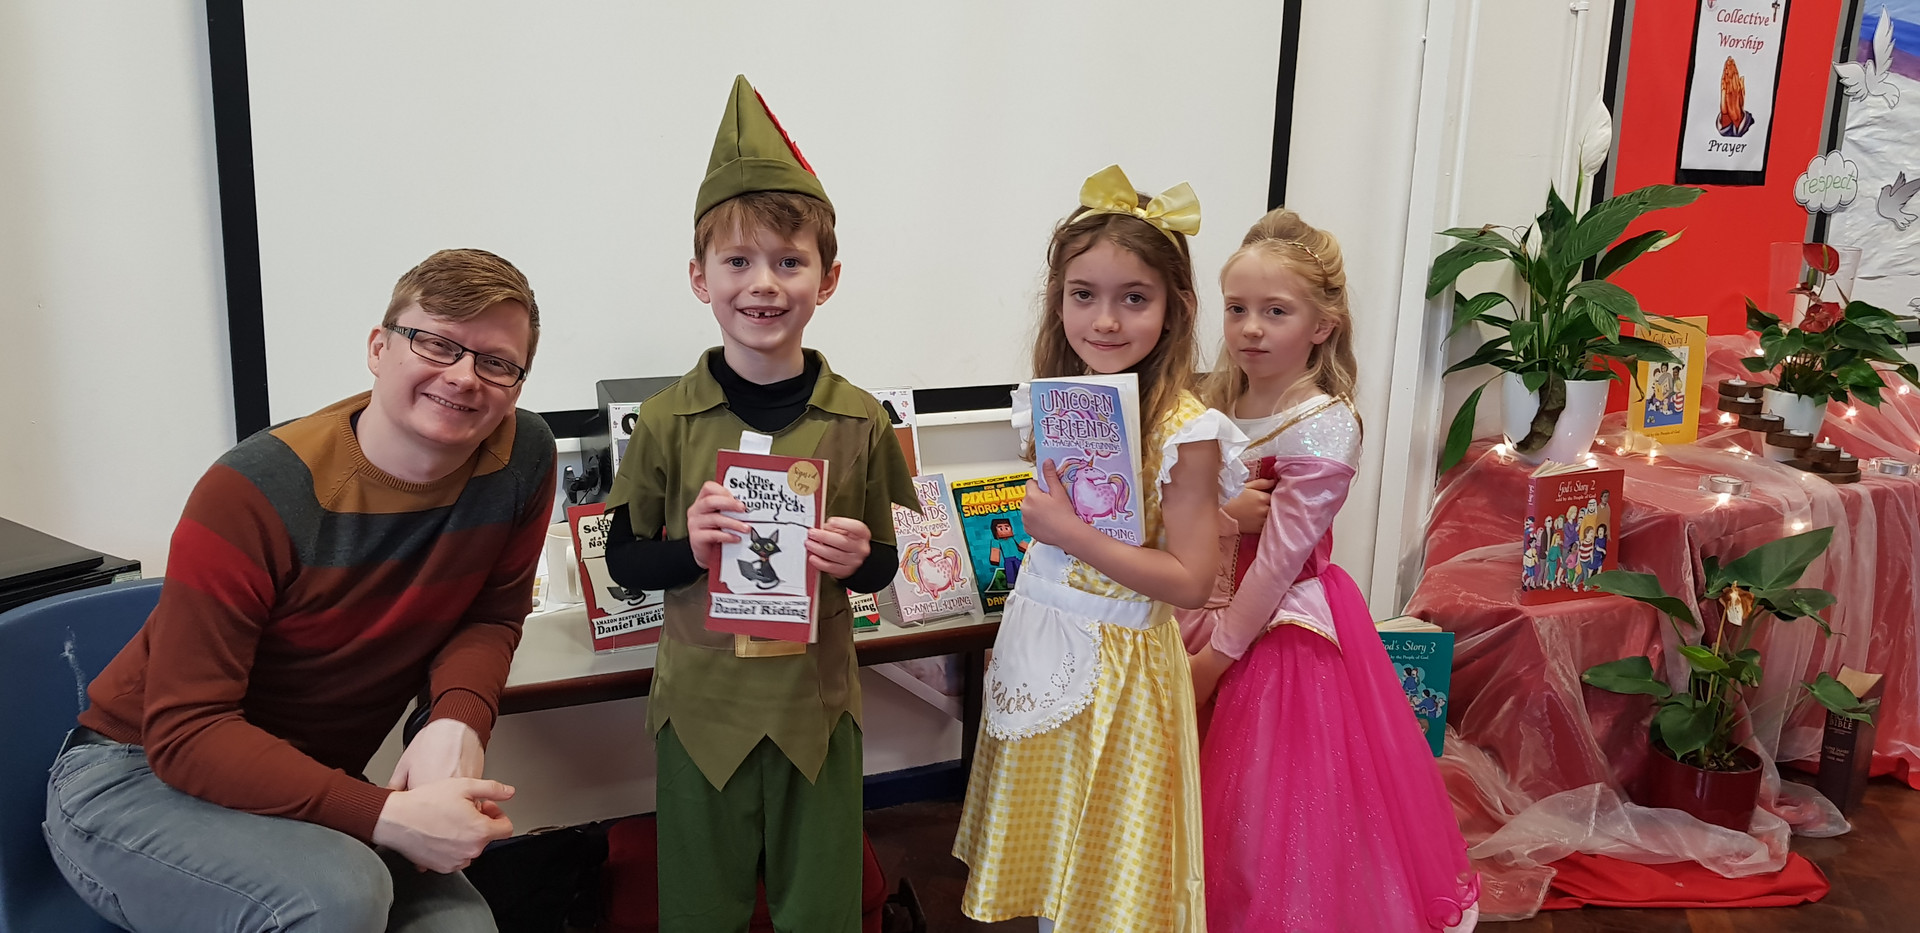 Some fab kids and their great costumes for World Book Day 2019